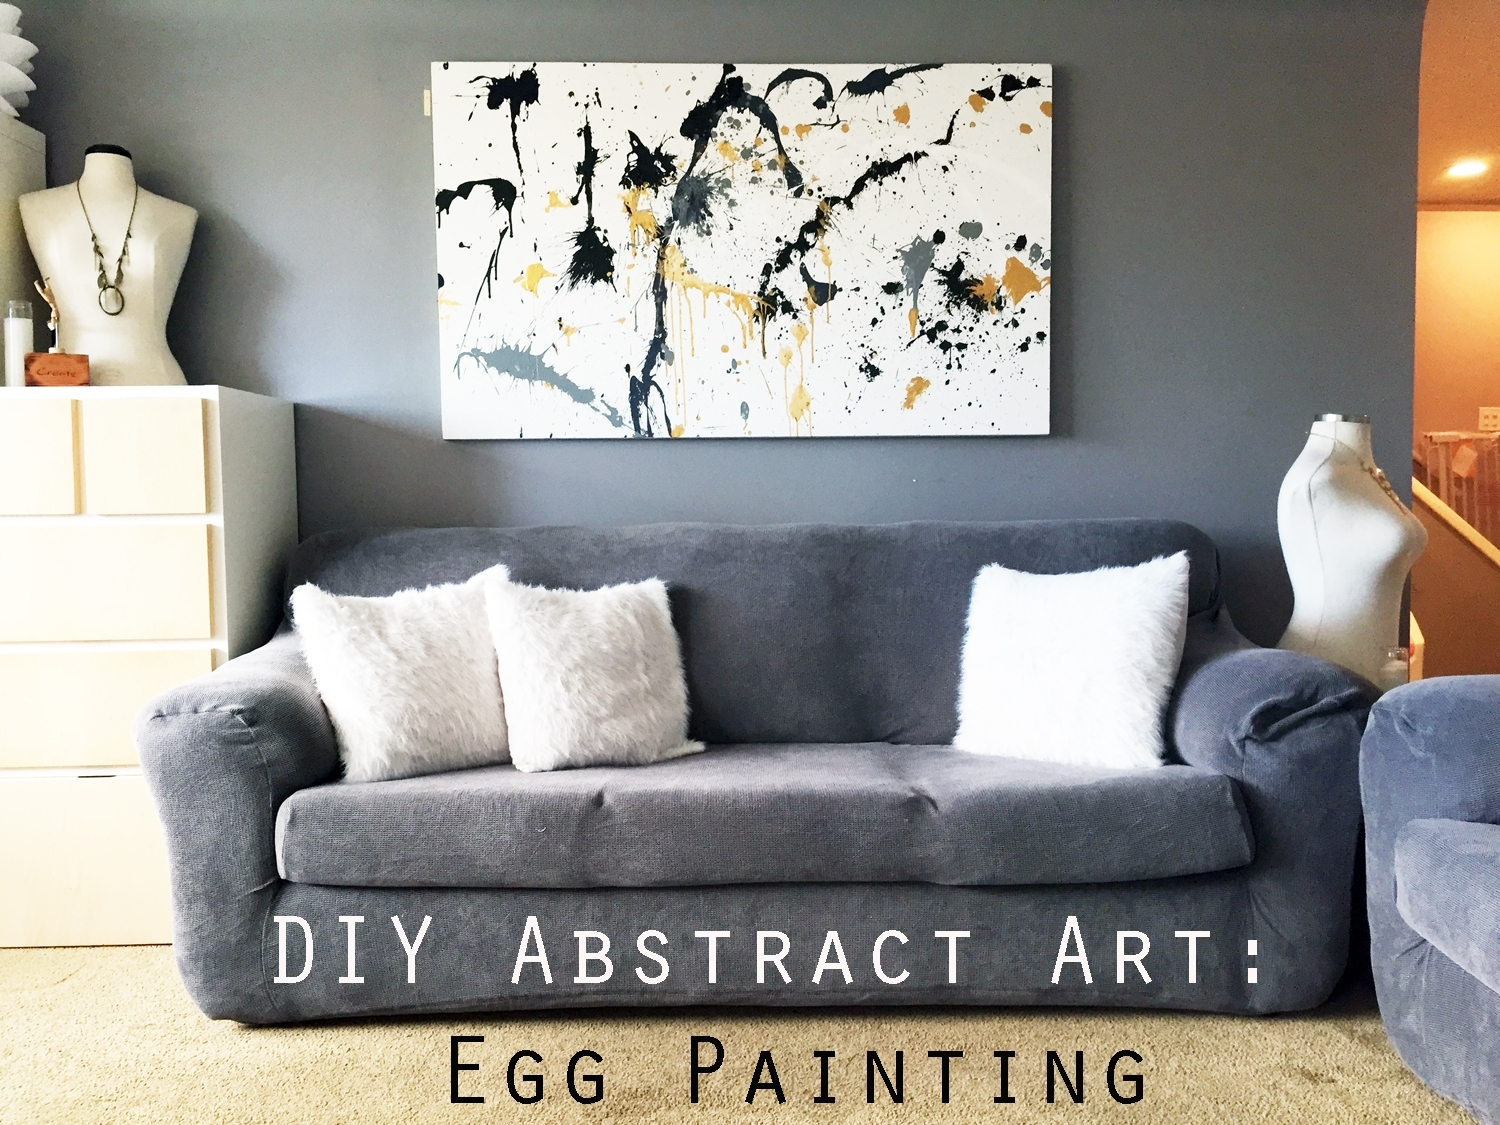 Diy Canvas Painting: Egg Splatter Gold Abstract Art – Creative Pertaining To Most Current Diy Abstract Wall Art (View 10 of 20)